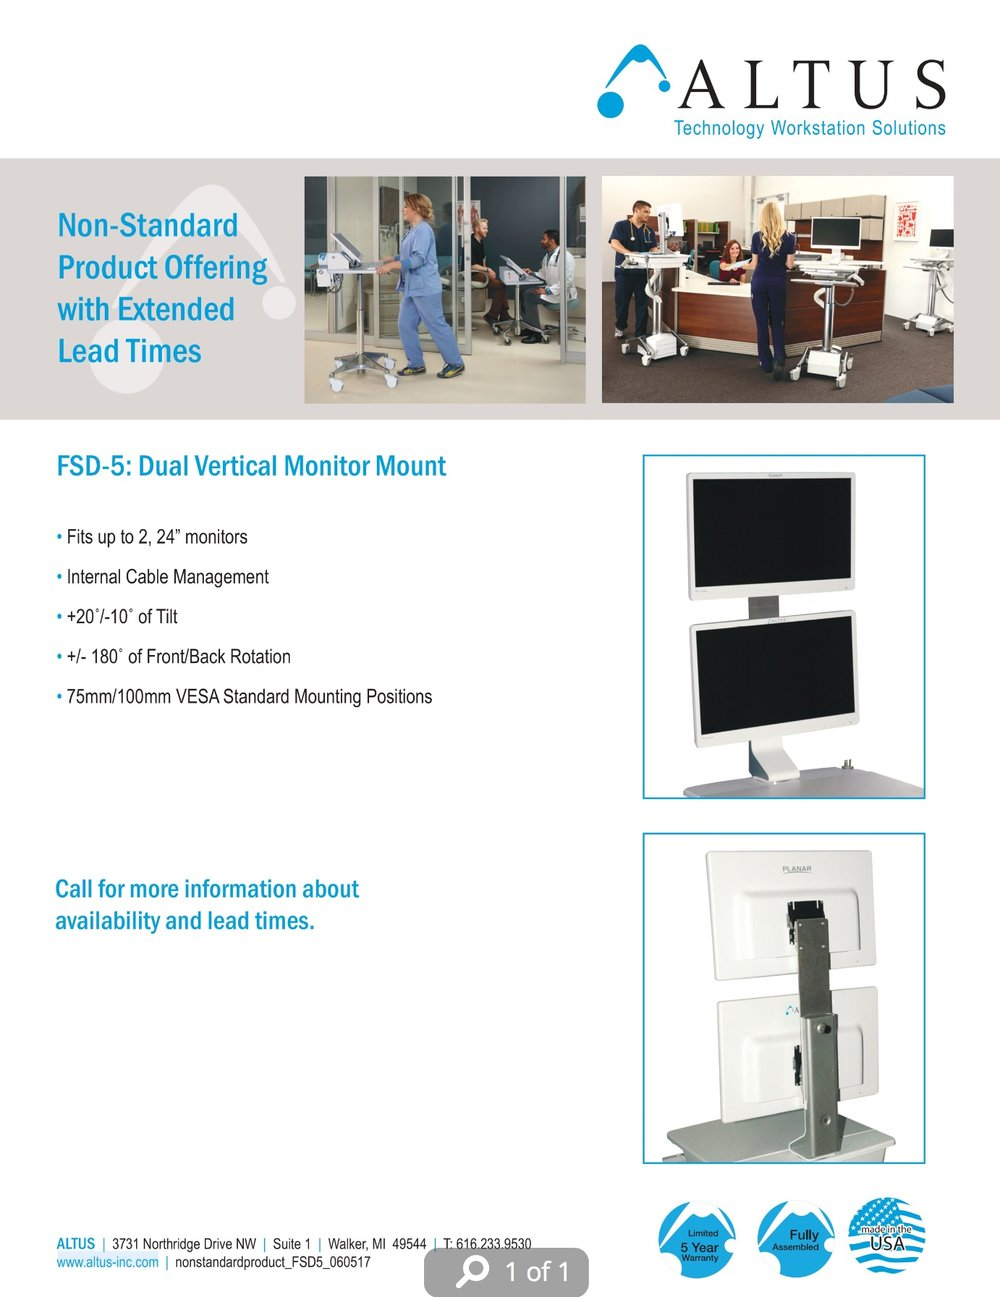 FSD-5 Non-Standard Vertical Dual Monitor Mount